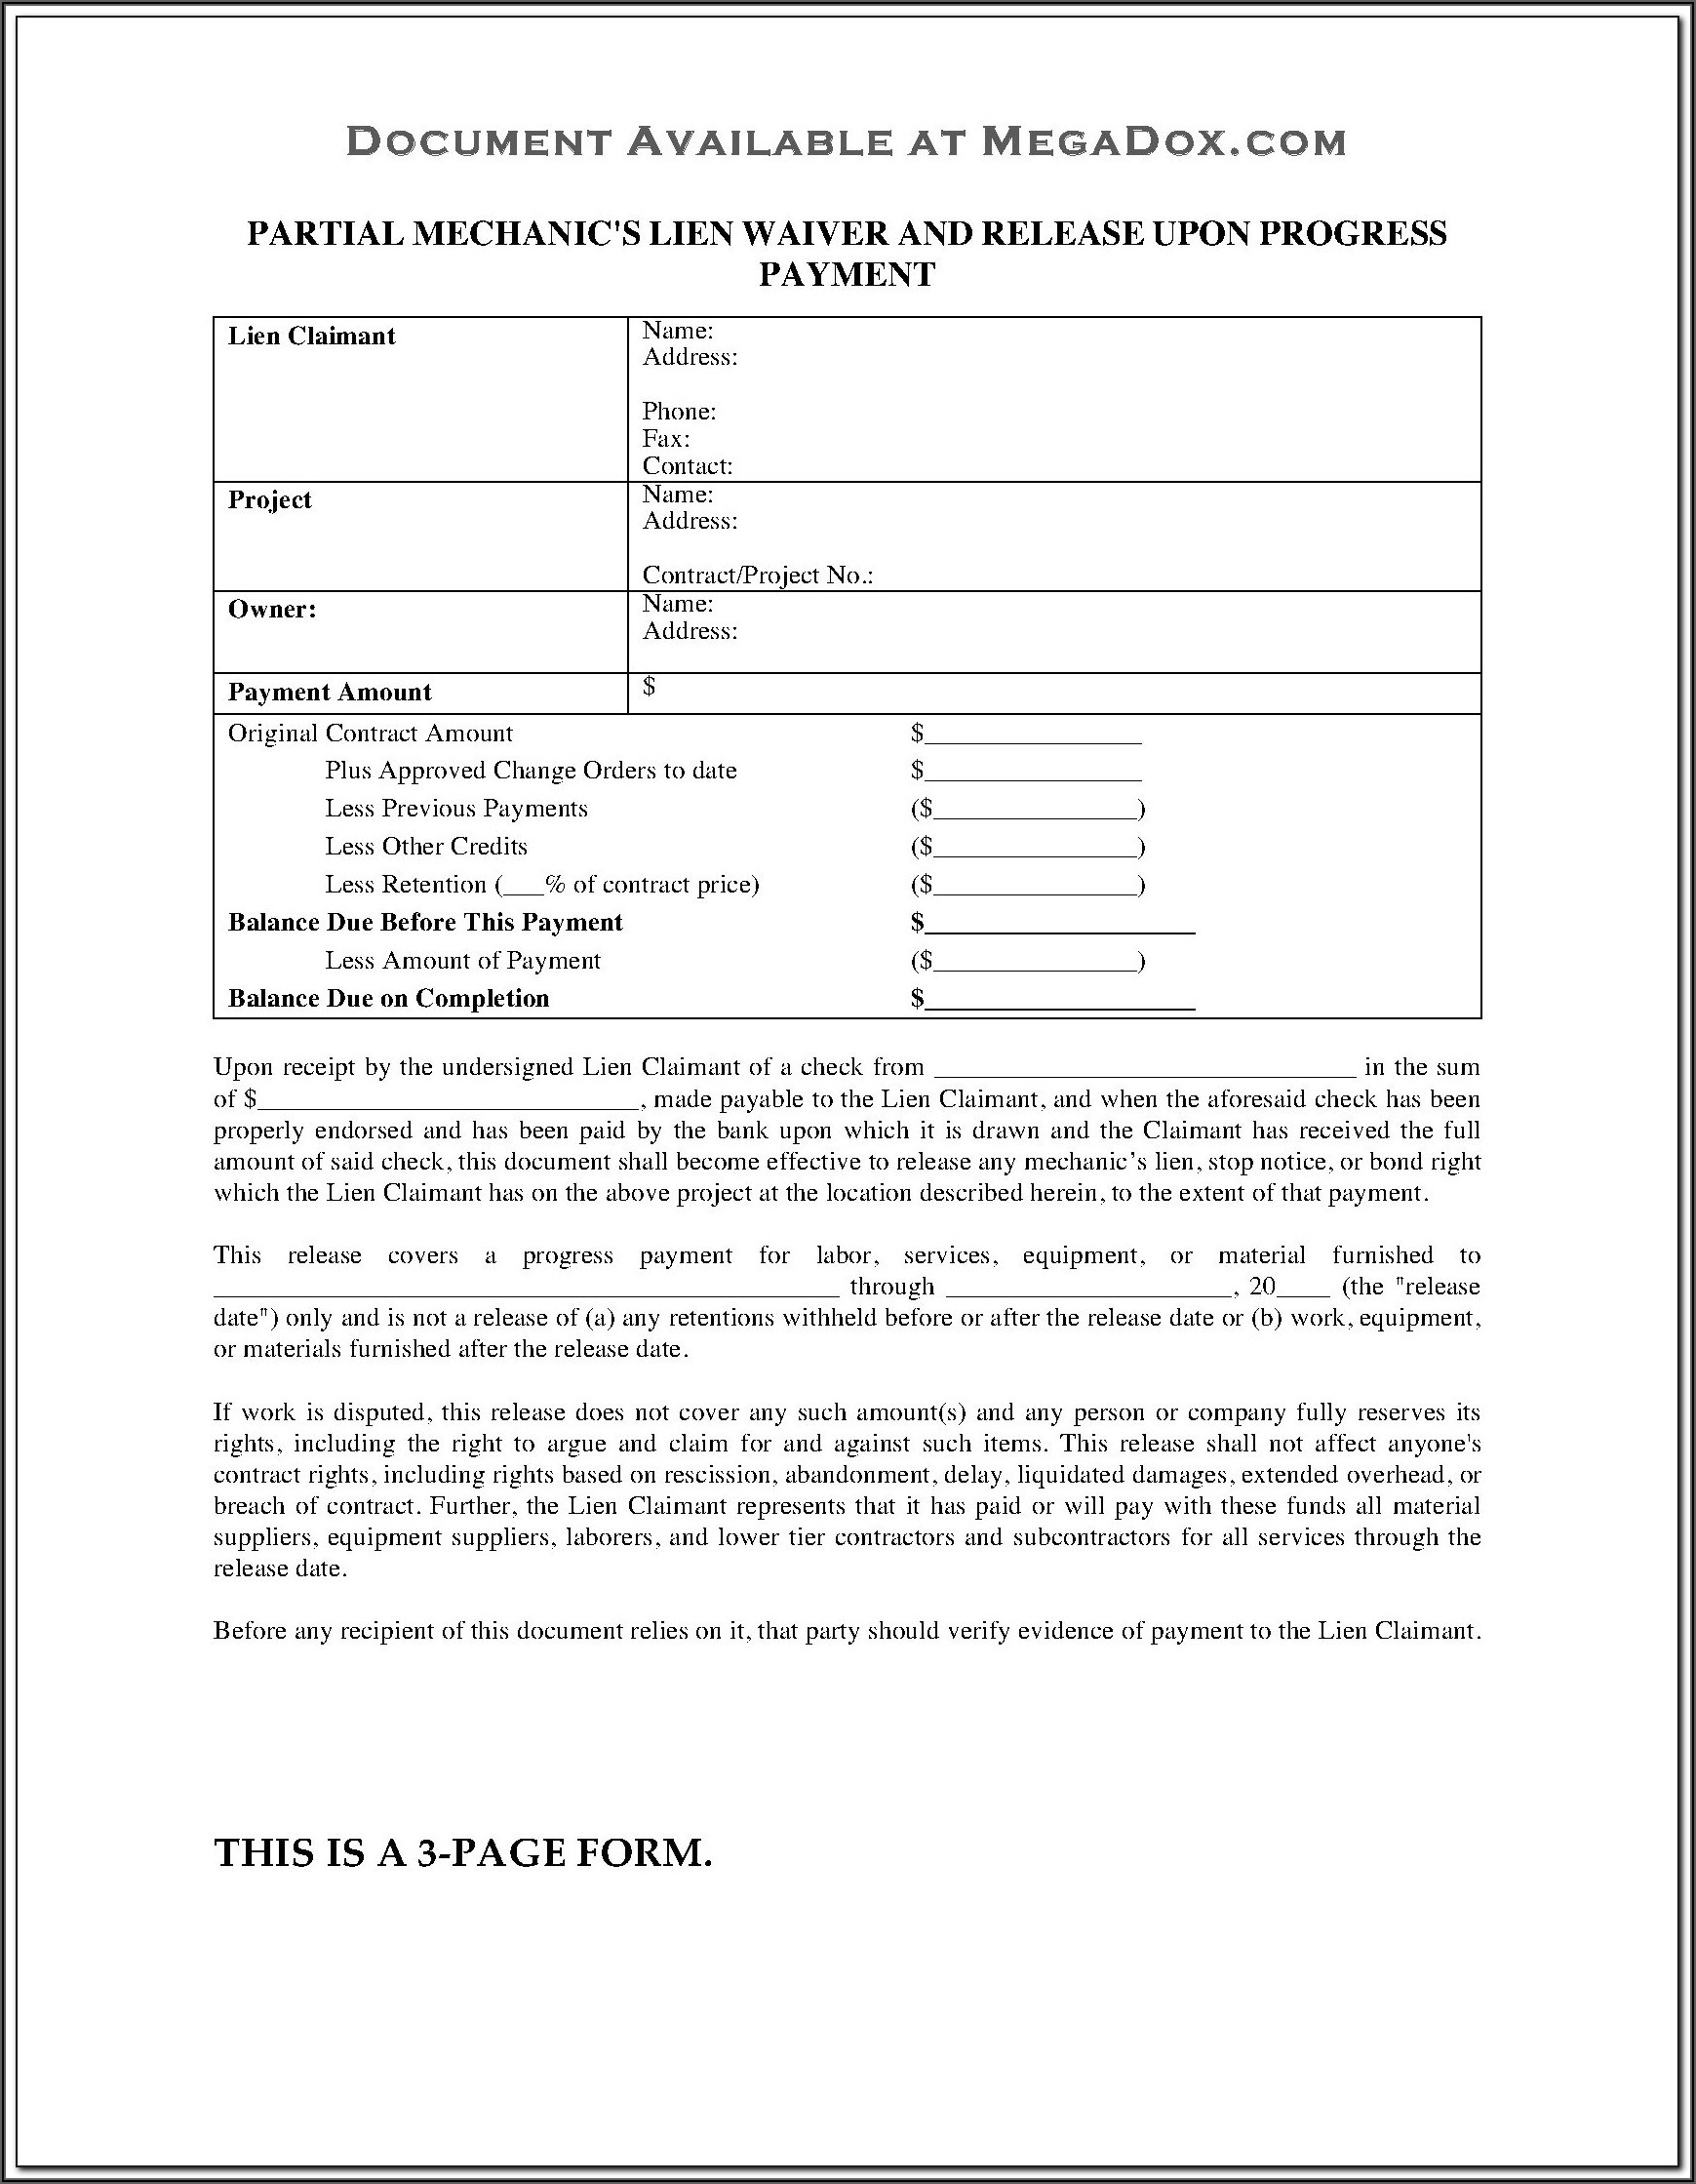 Divorce Waiver Form